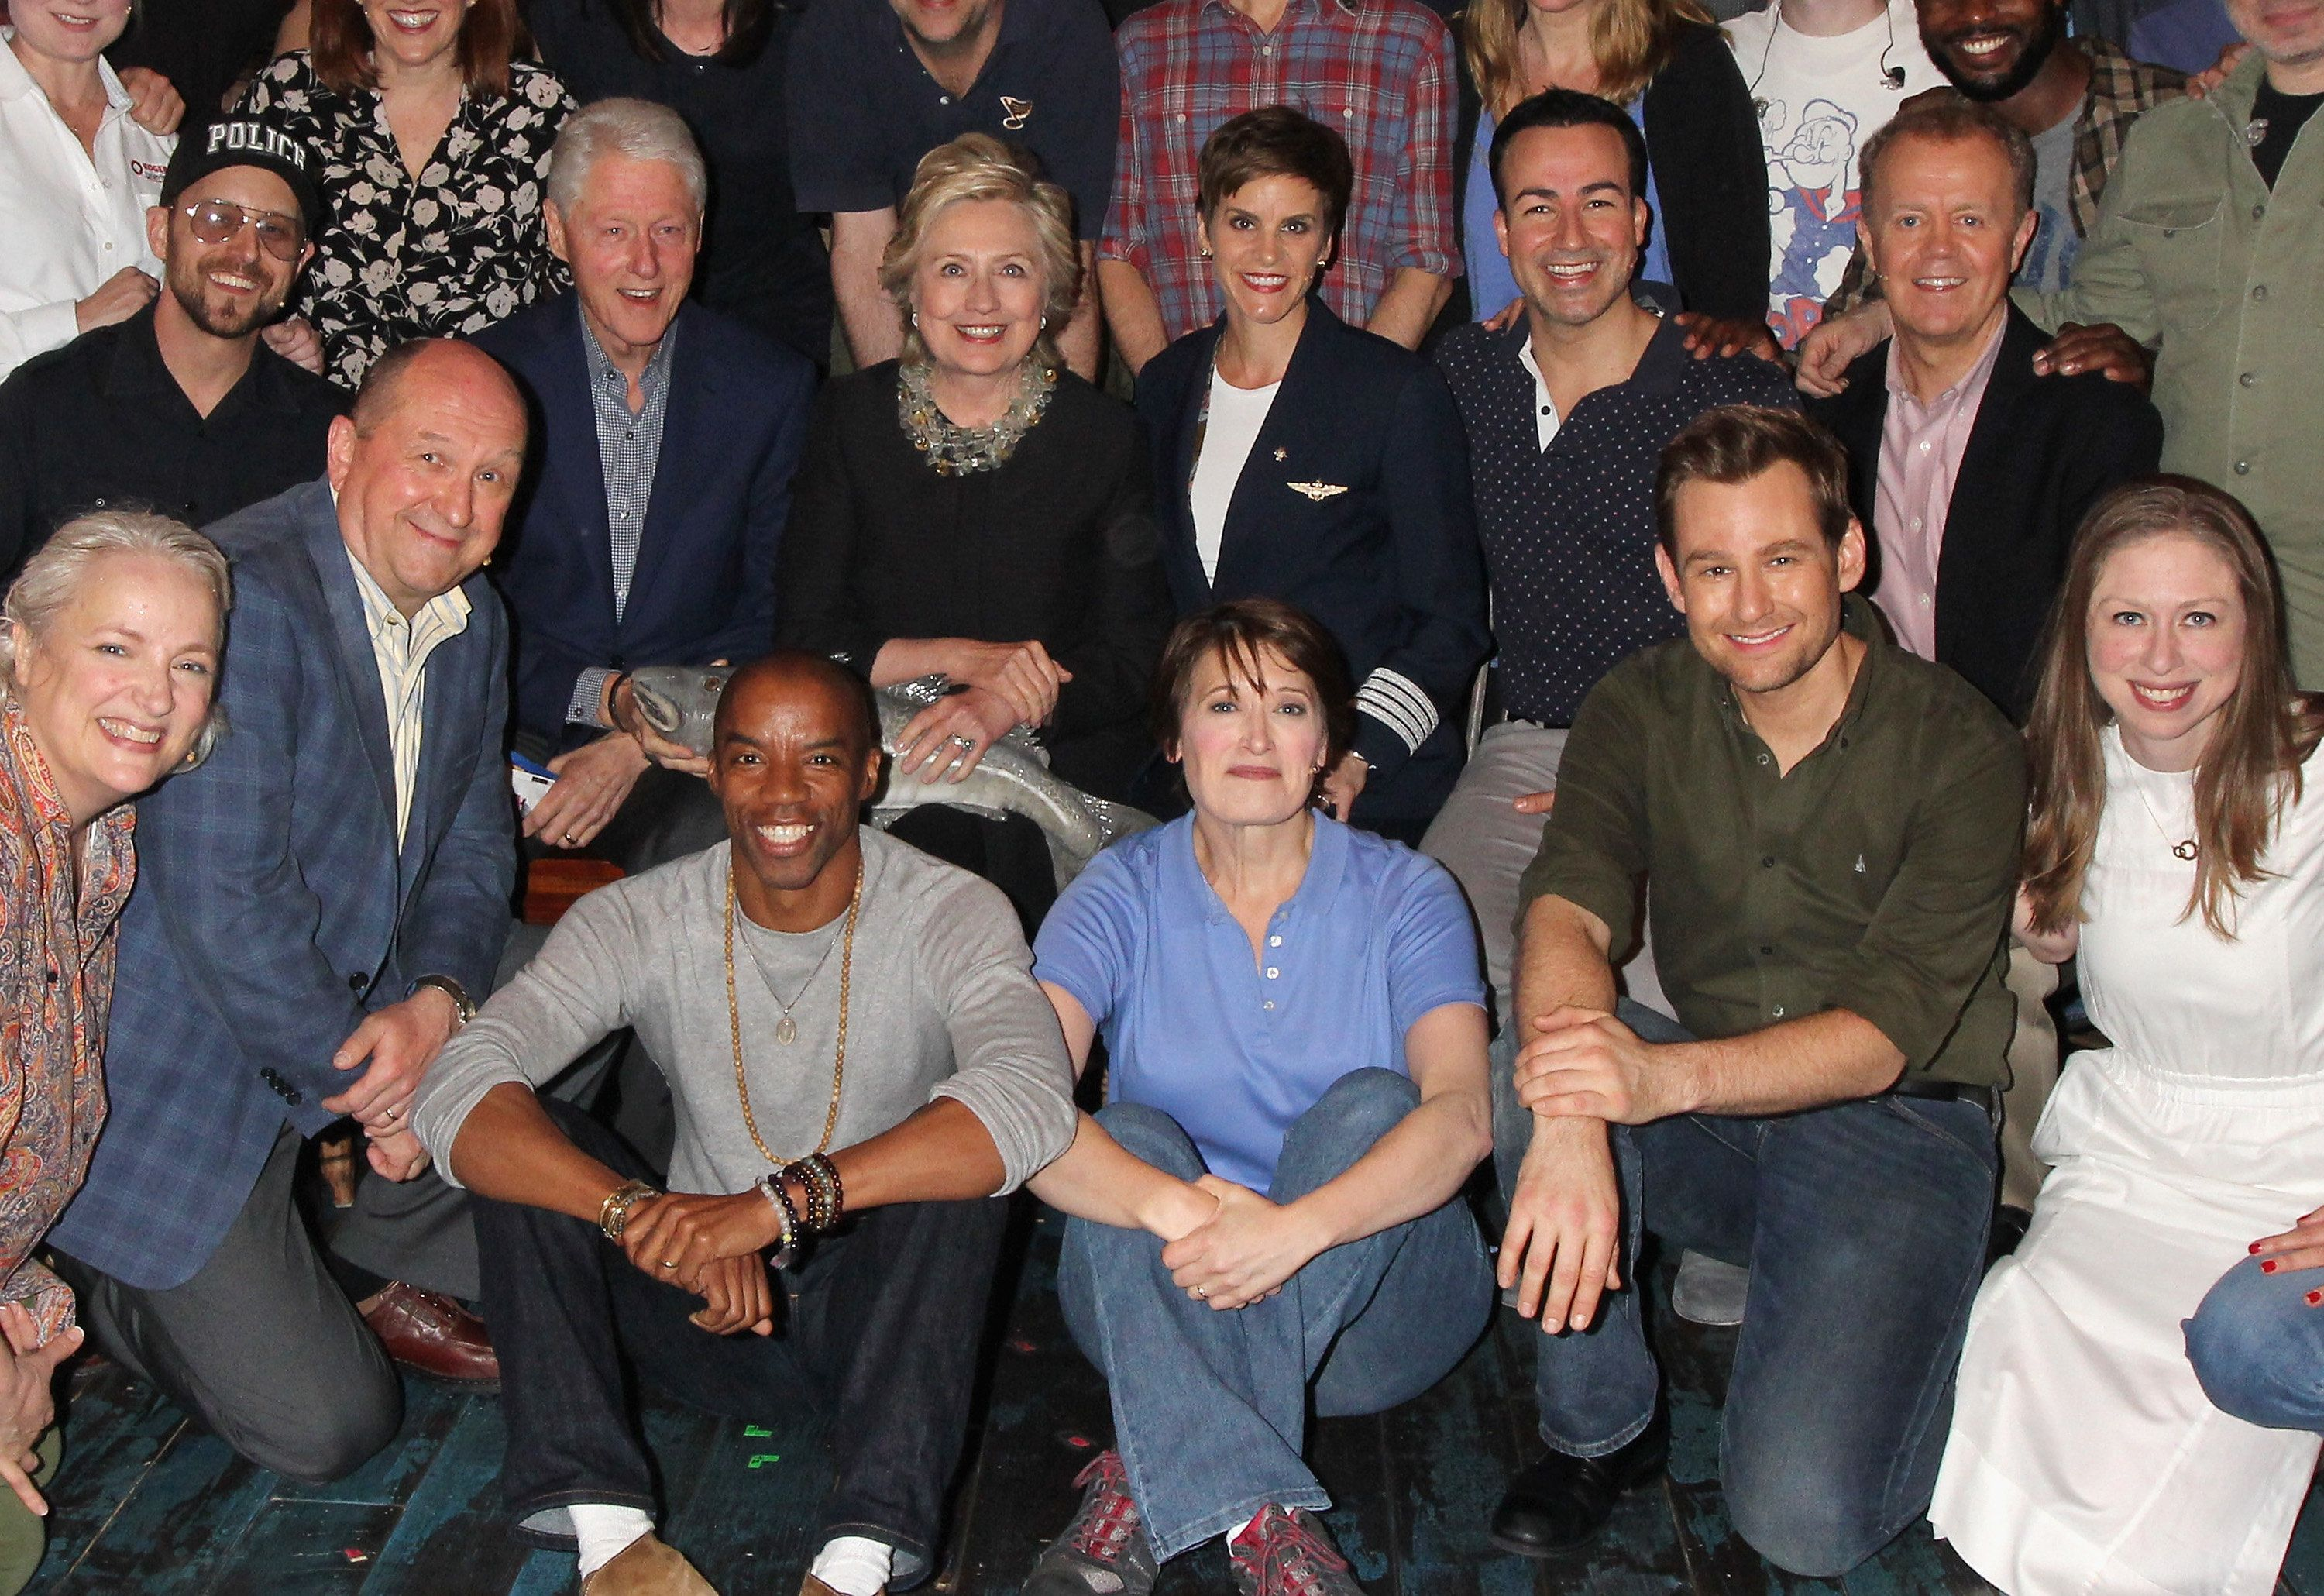 Bill and Hillz with the cast.